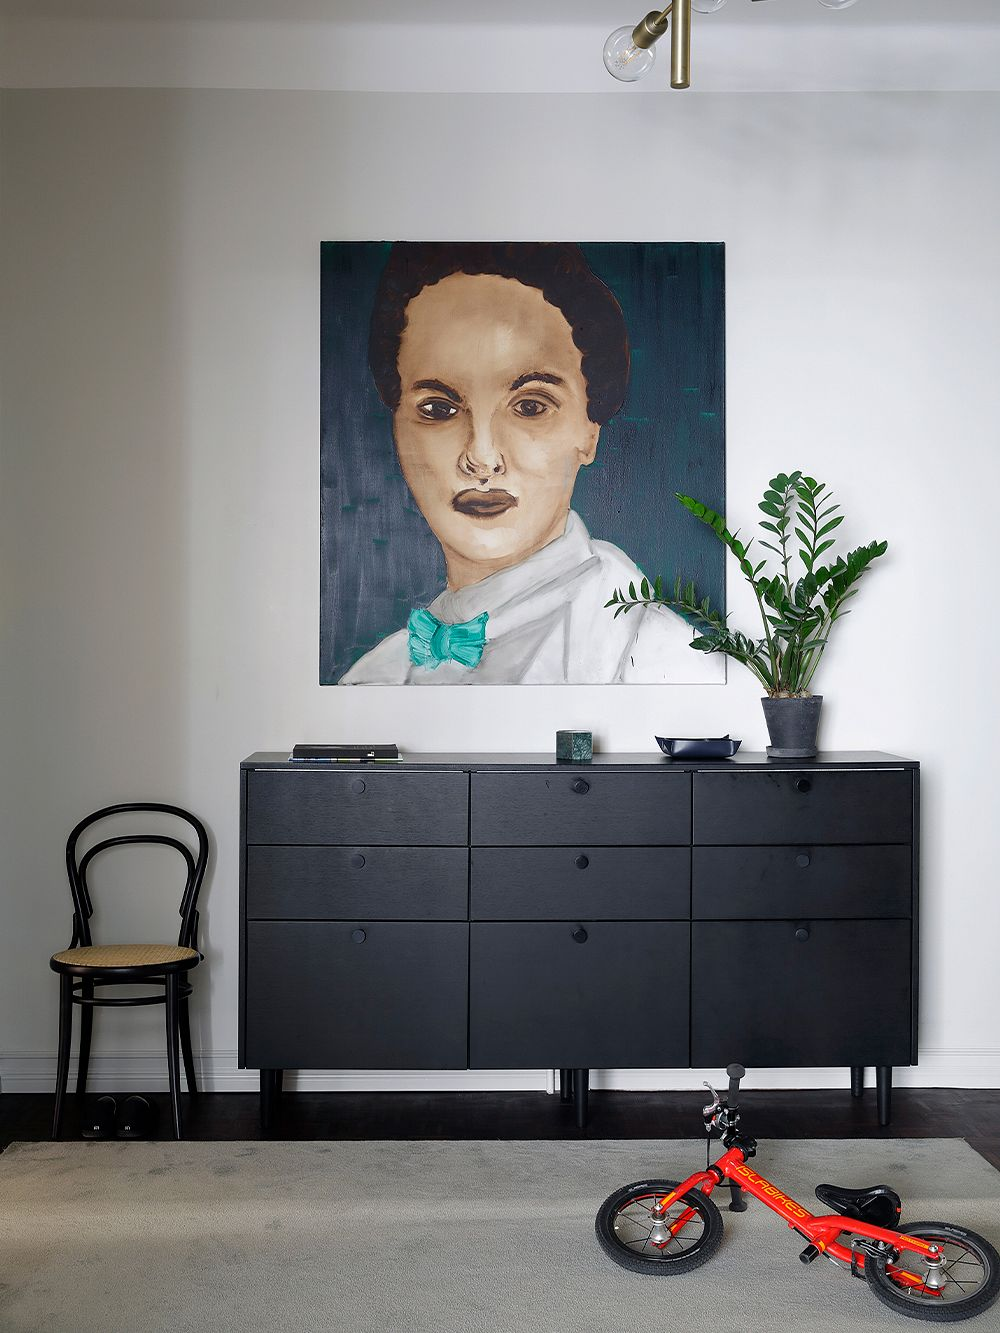 Black sideboard, red bicycle and a large portrait